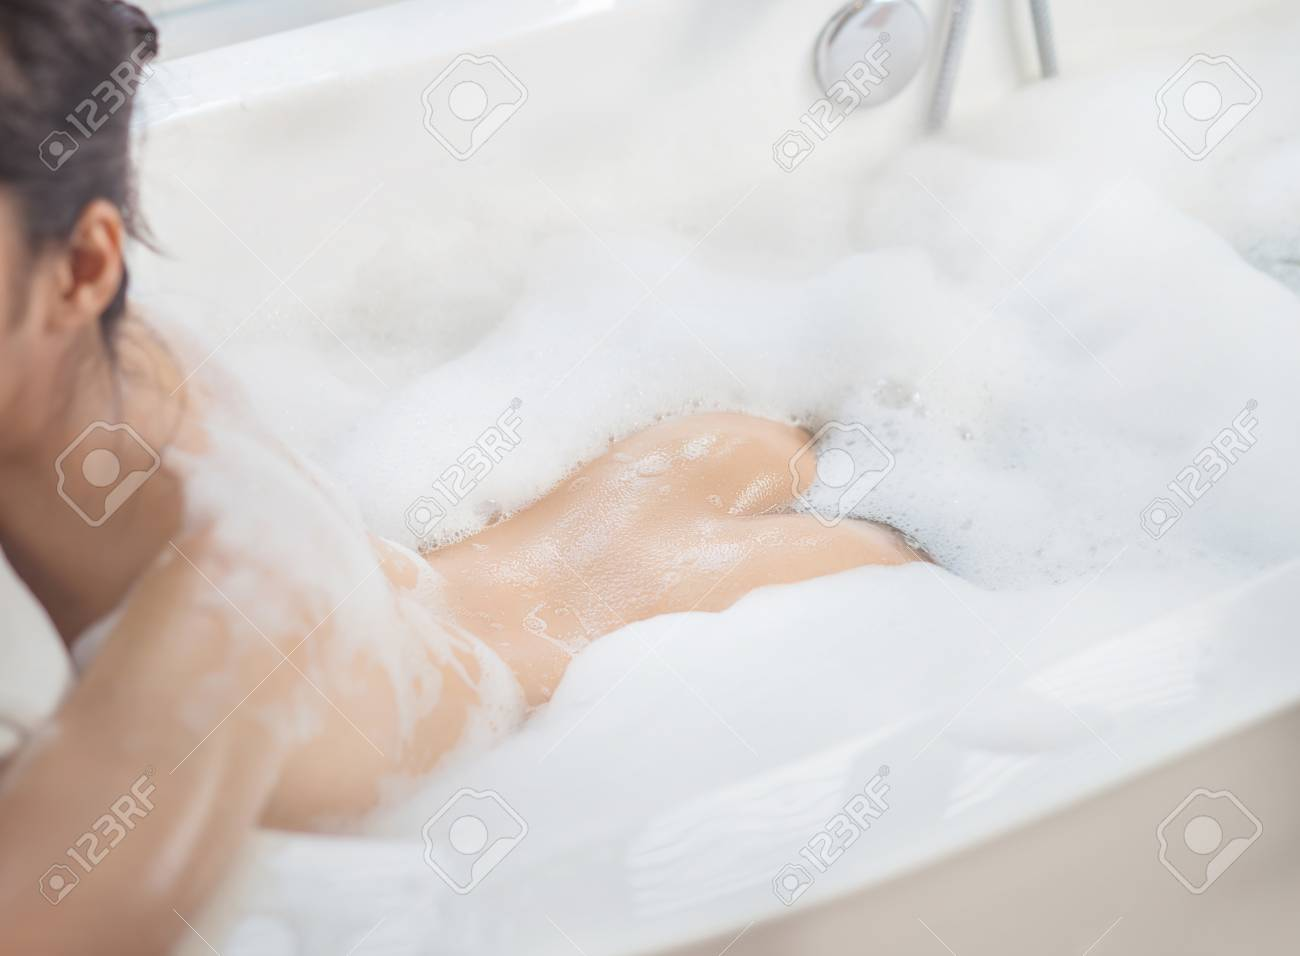 5206abda8cd45 Stock Photo - Women s bottoms She is taking a bath happily She is in the  bathtub